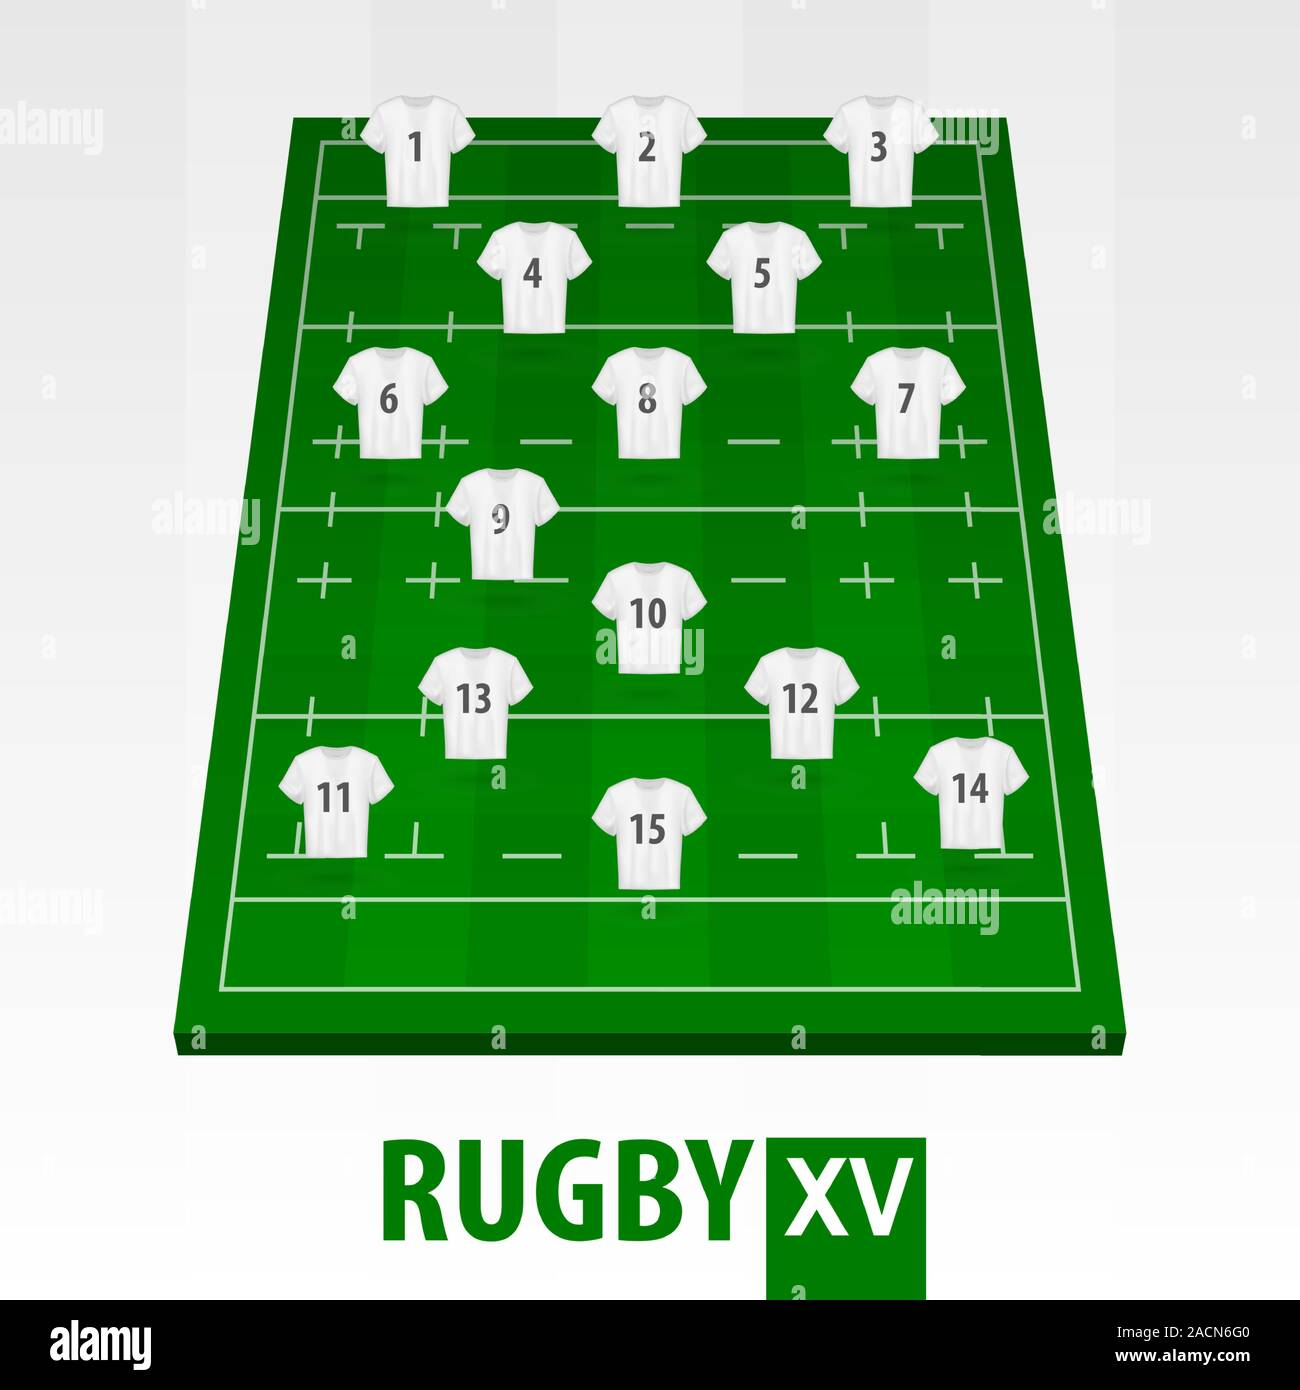 Formation Of Rugby League High Resolution Stock Photography And Images Alamy